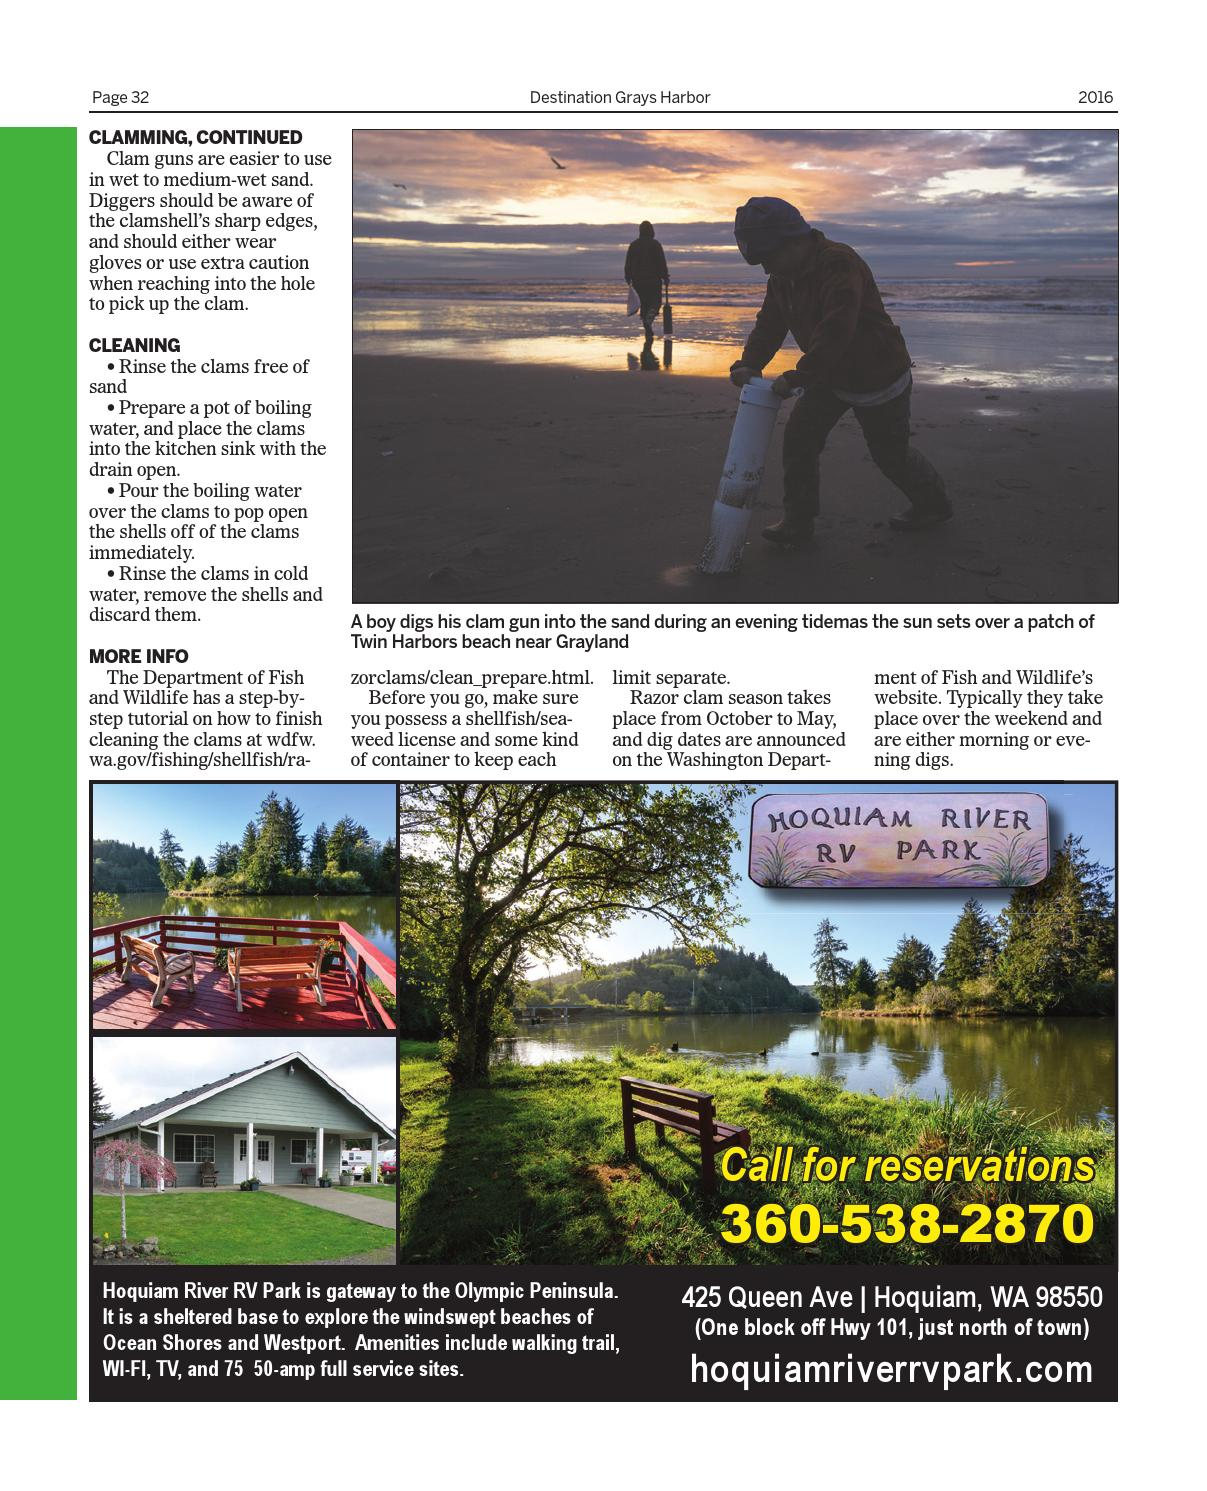 Clam Diggers Pot And A Failed Marriage Proposal: Destination Grays Harbor